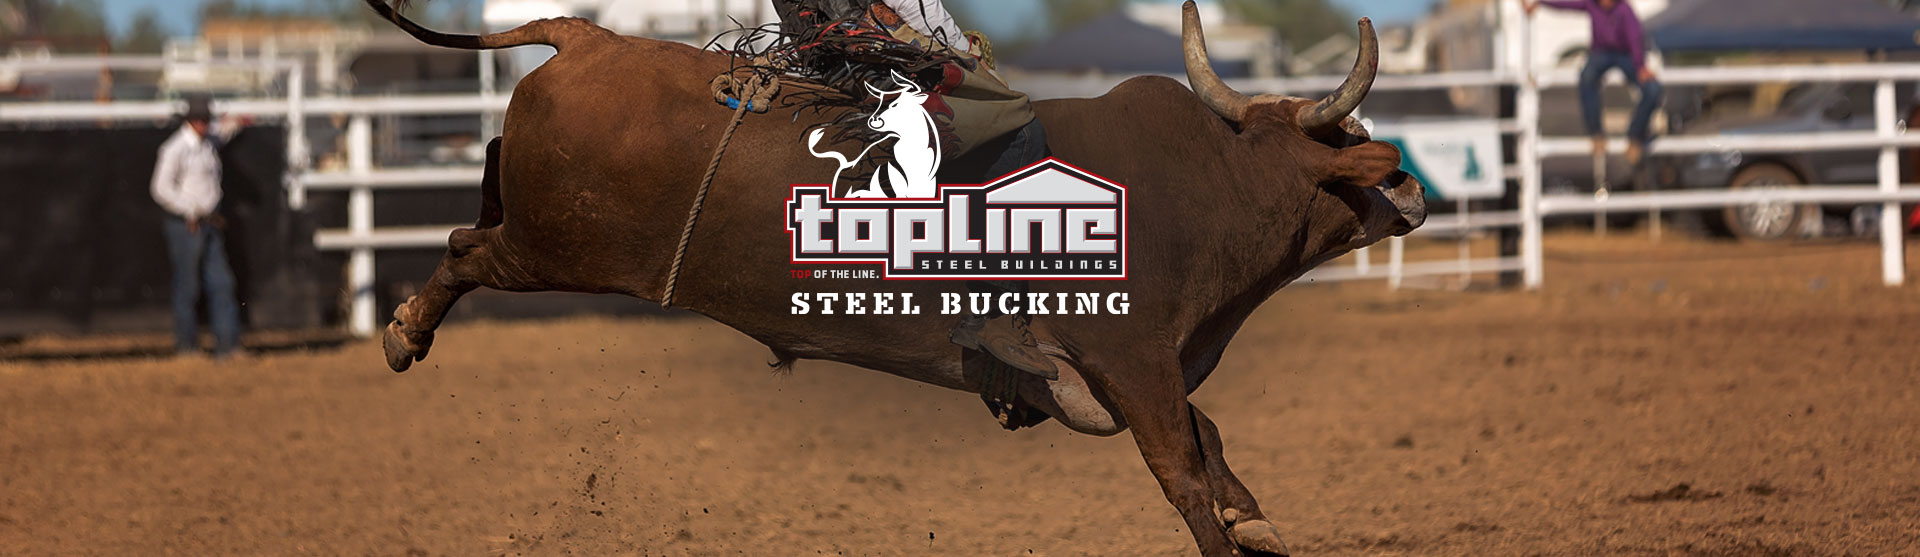 Topline Steel Buildings Now Has Top of the Line Bucking Bulls!